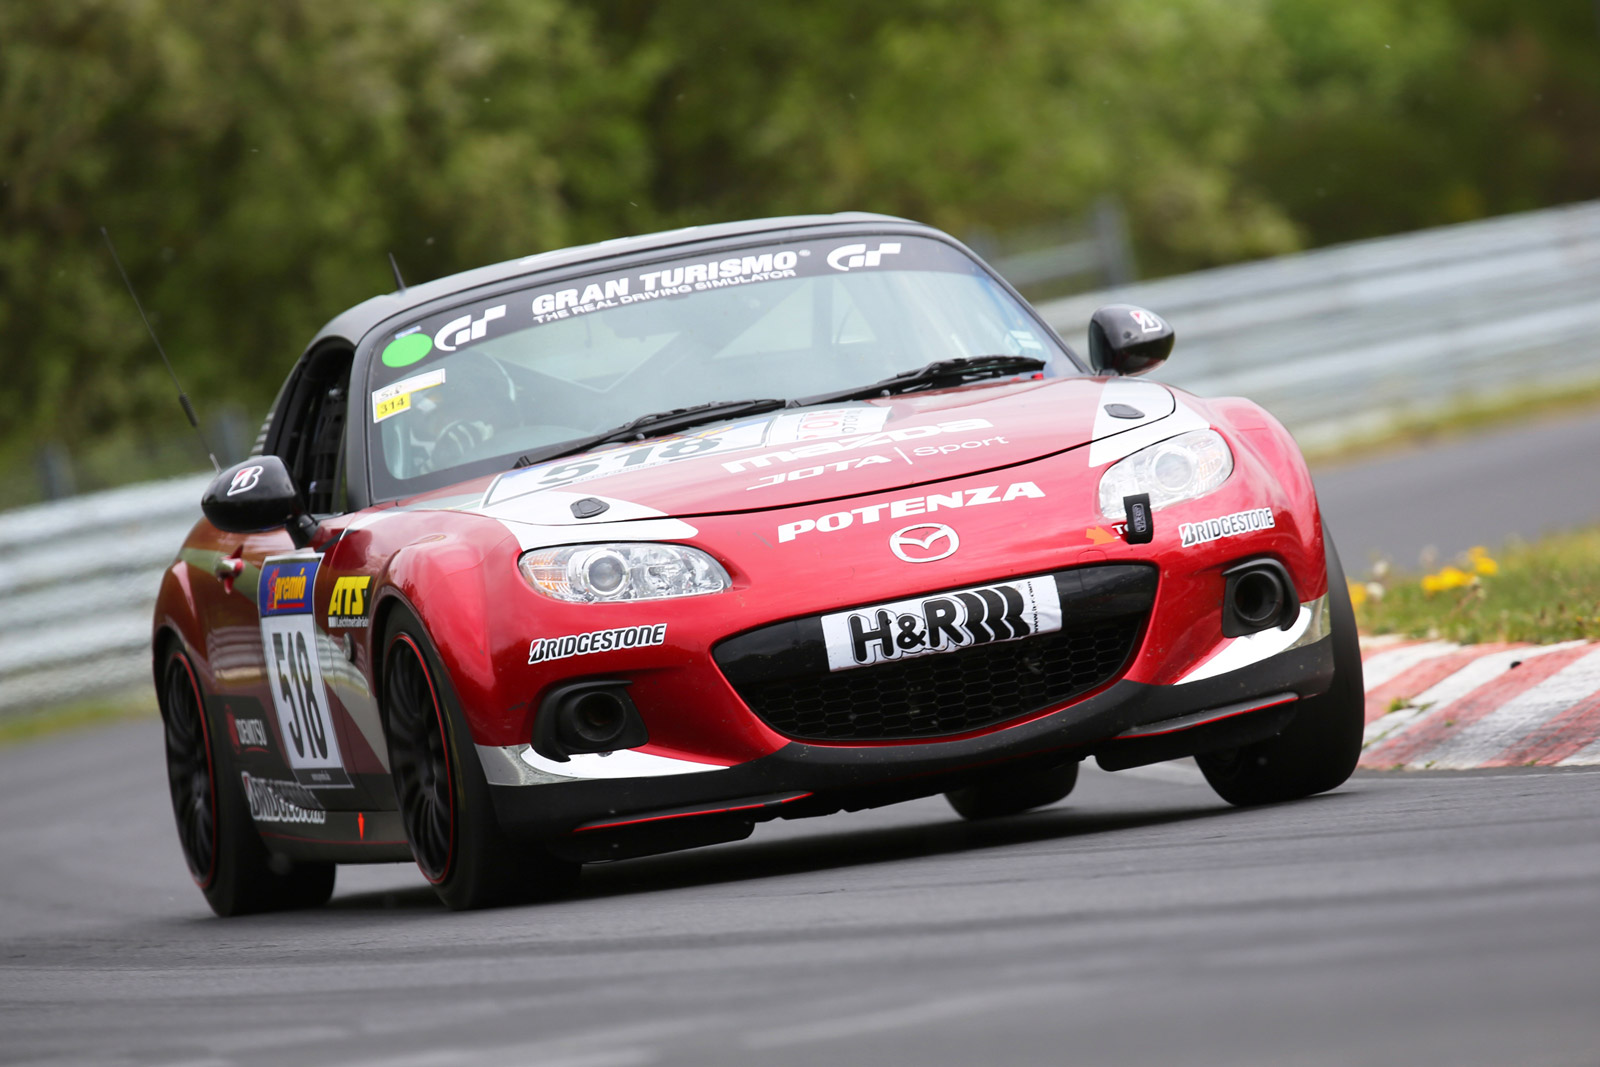 mazda mx 5 to enter n rburgring 24 hours as part of 25th anniversary celebrations. Black Bedroom Furniture Sets. Home Design Ideas